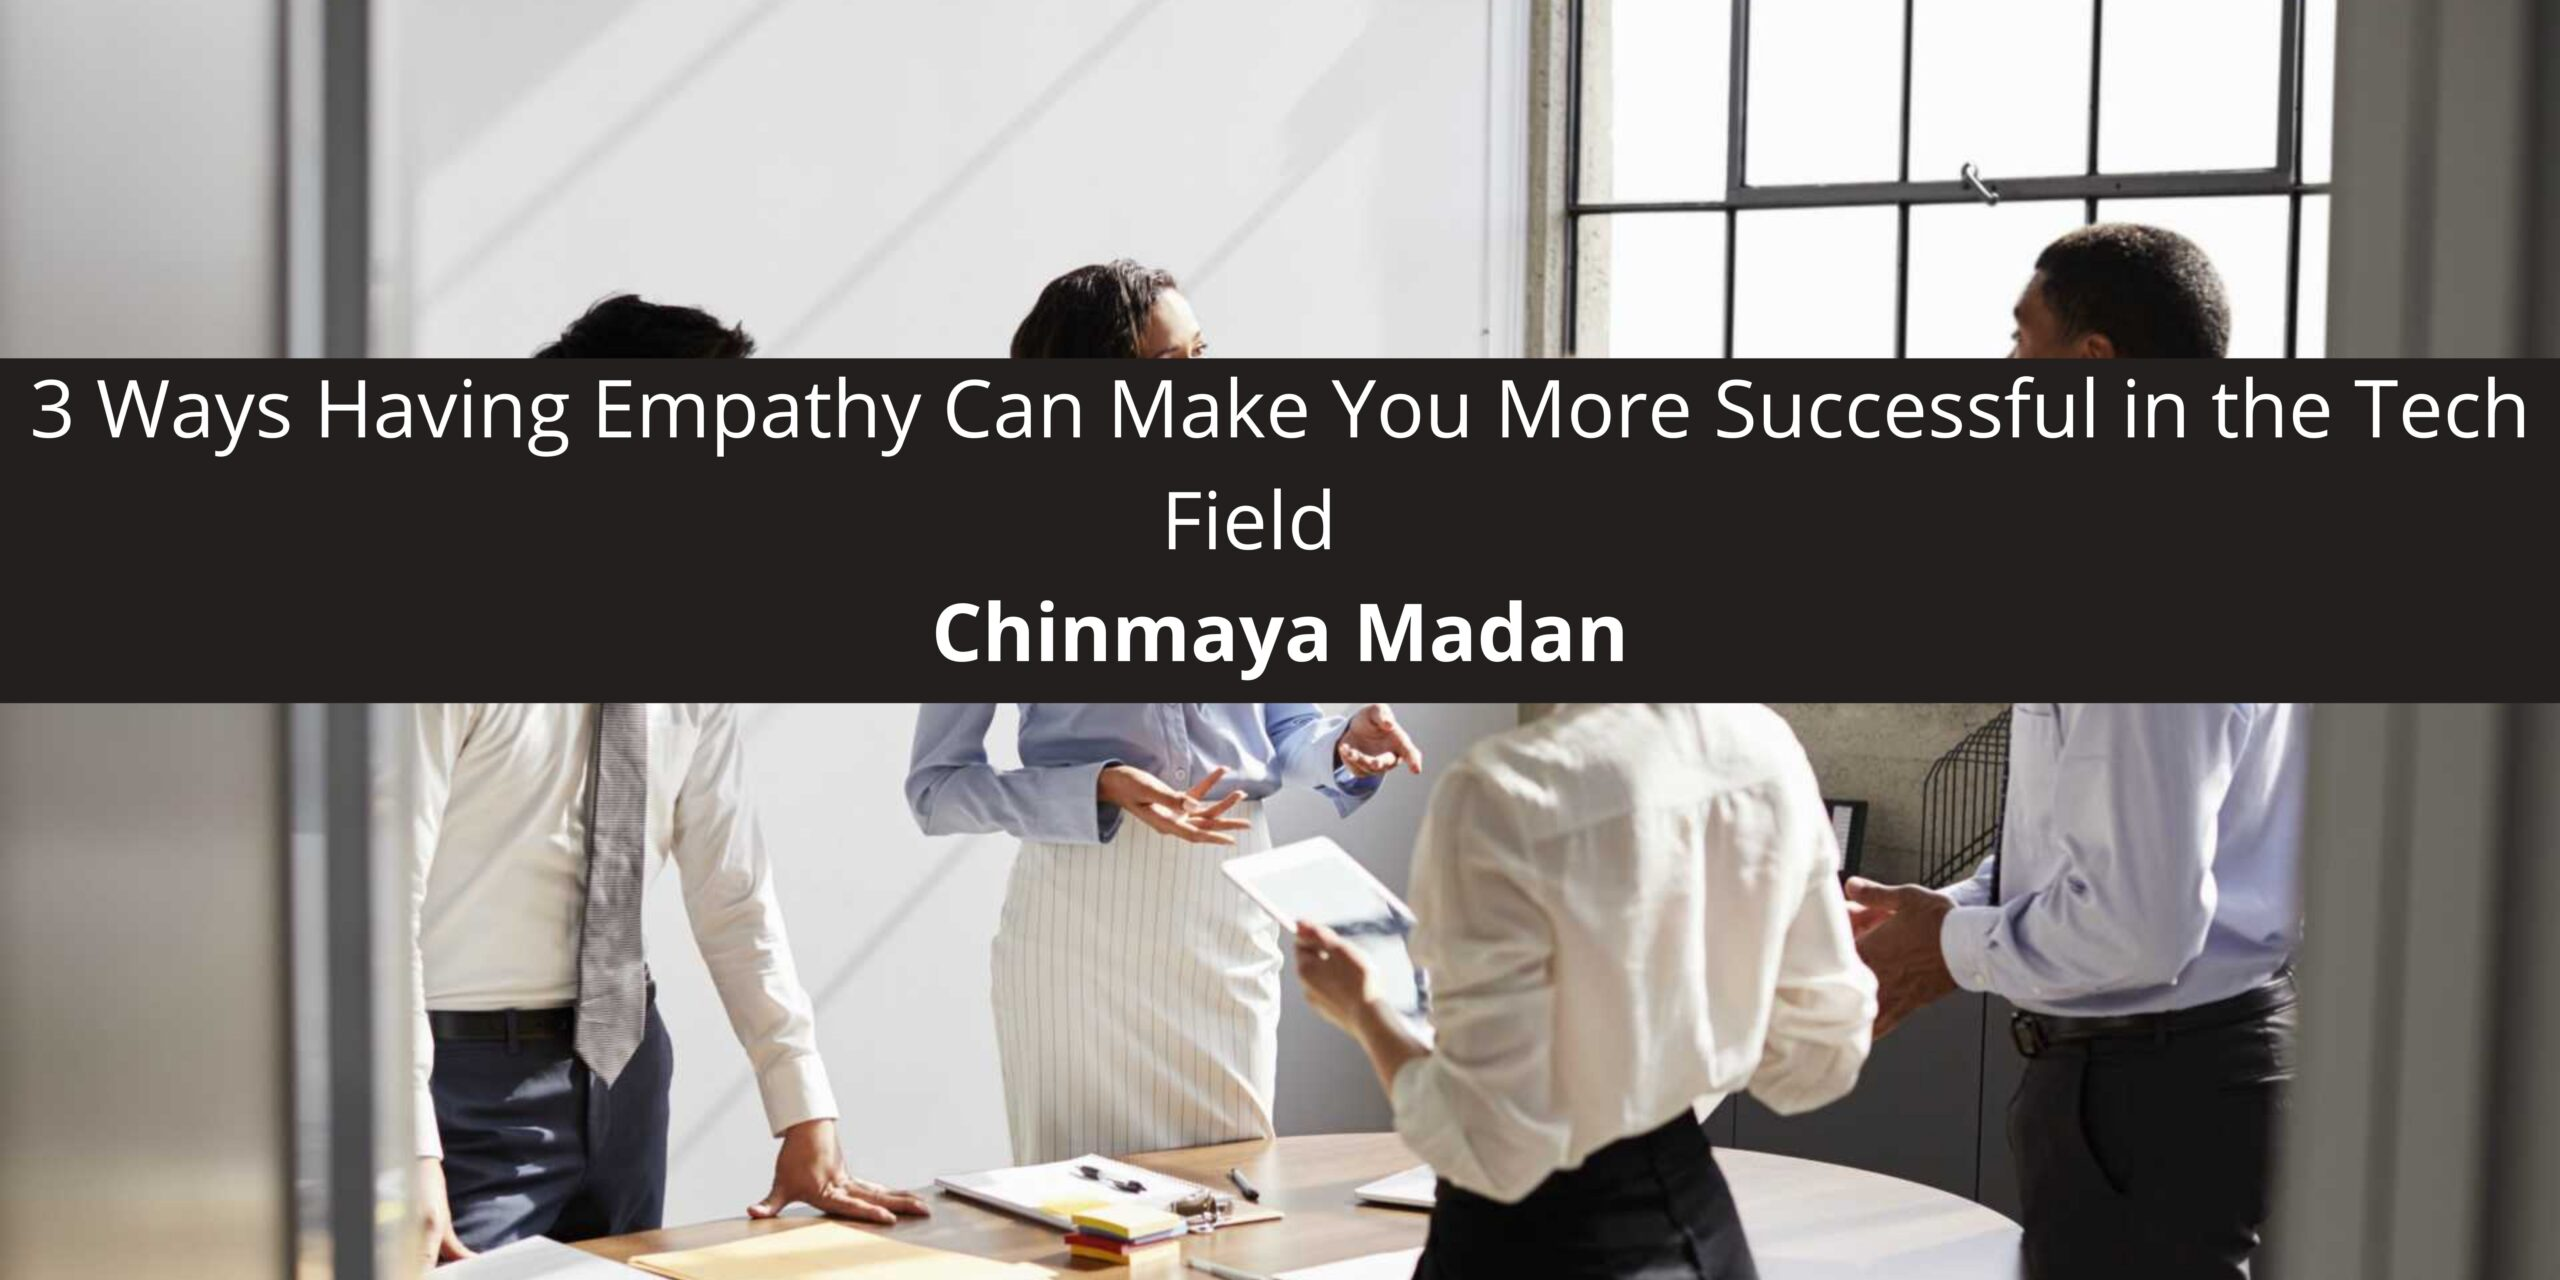 3 Ways Having Empathy Can Make You More Successful in the Tech Field